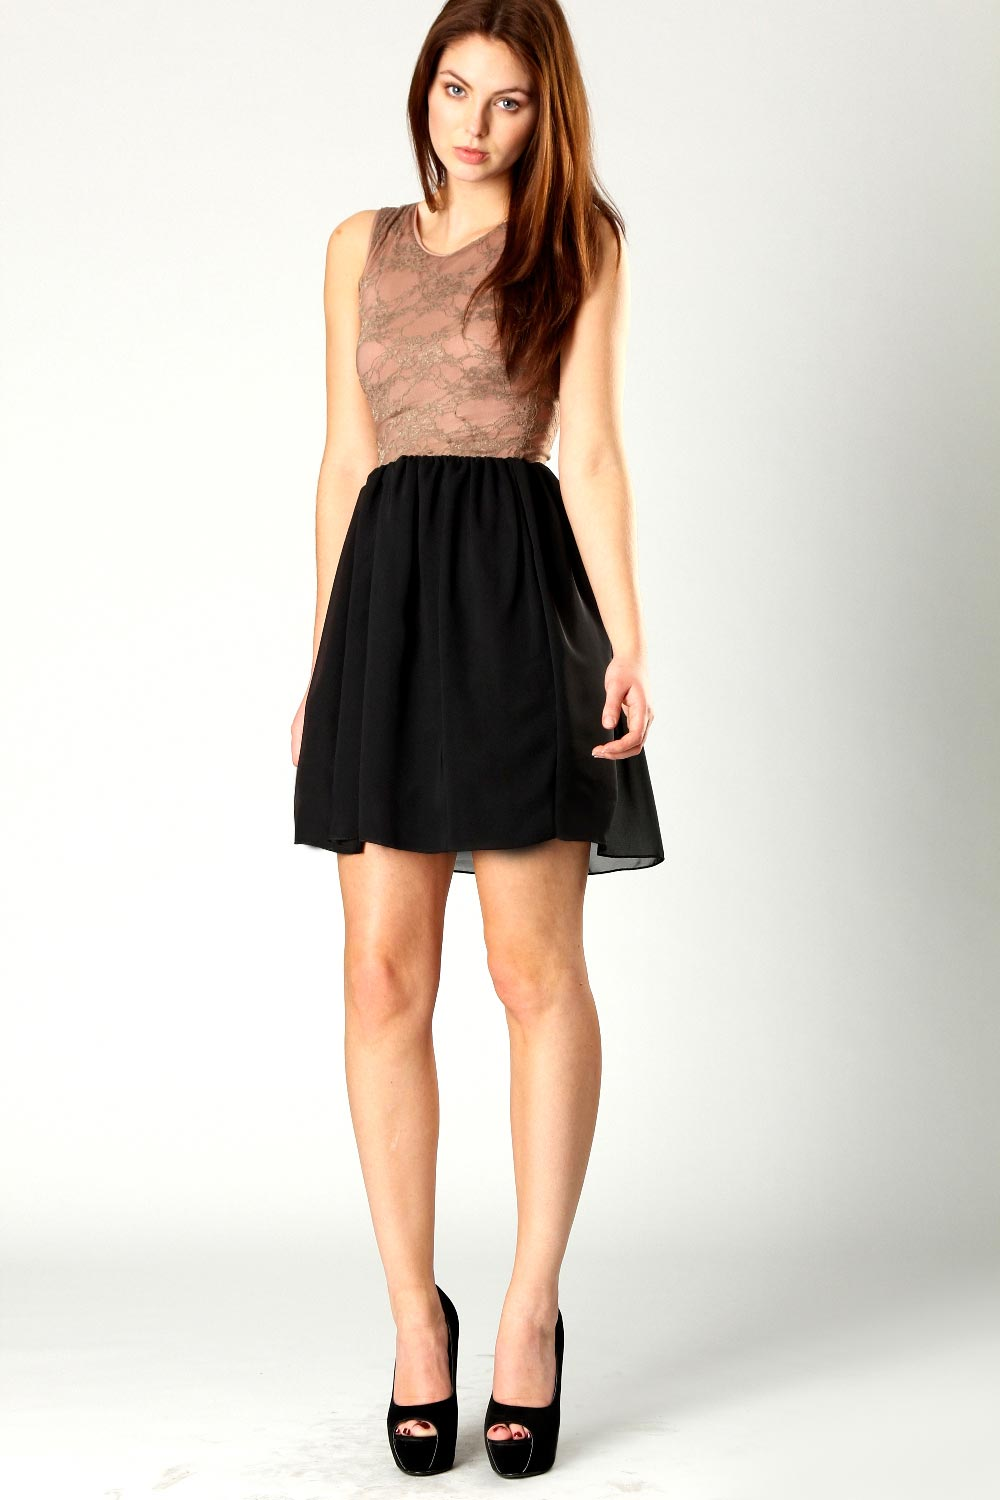 Boohoo-Shannon-Lace-Cut-Out-Dress